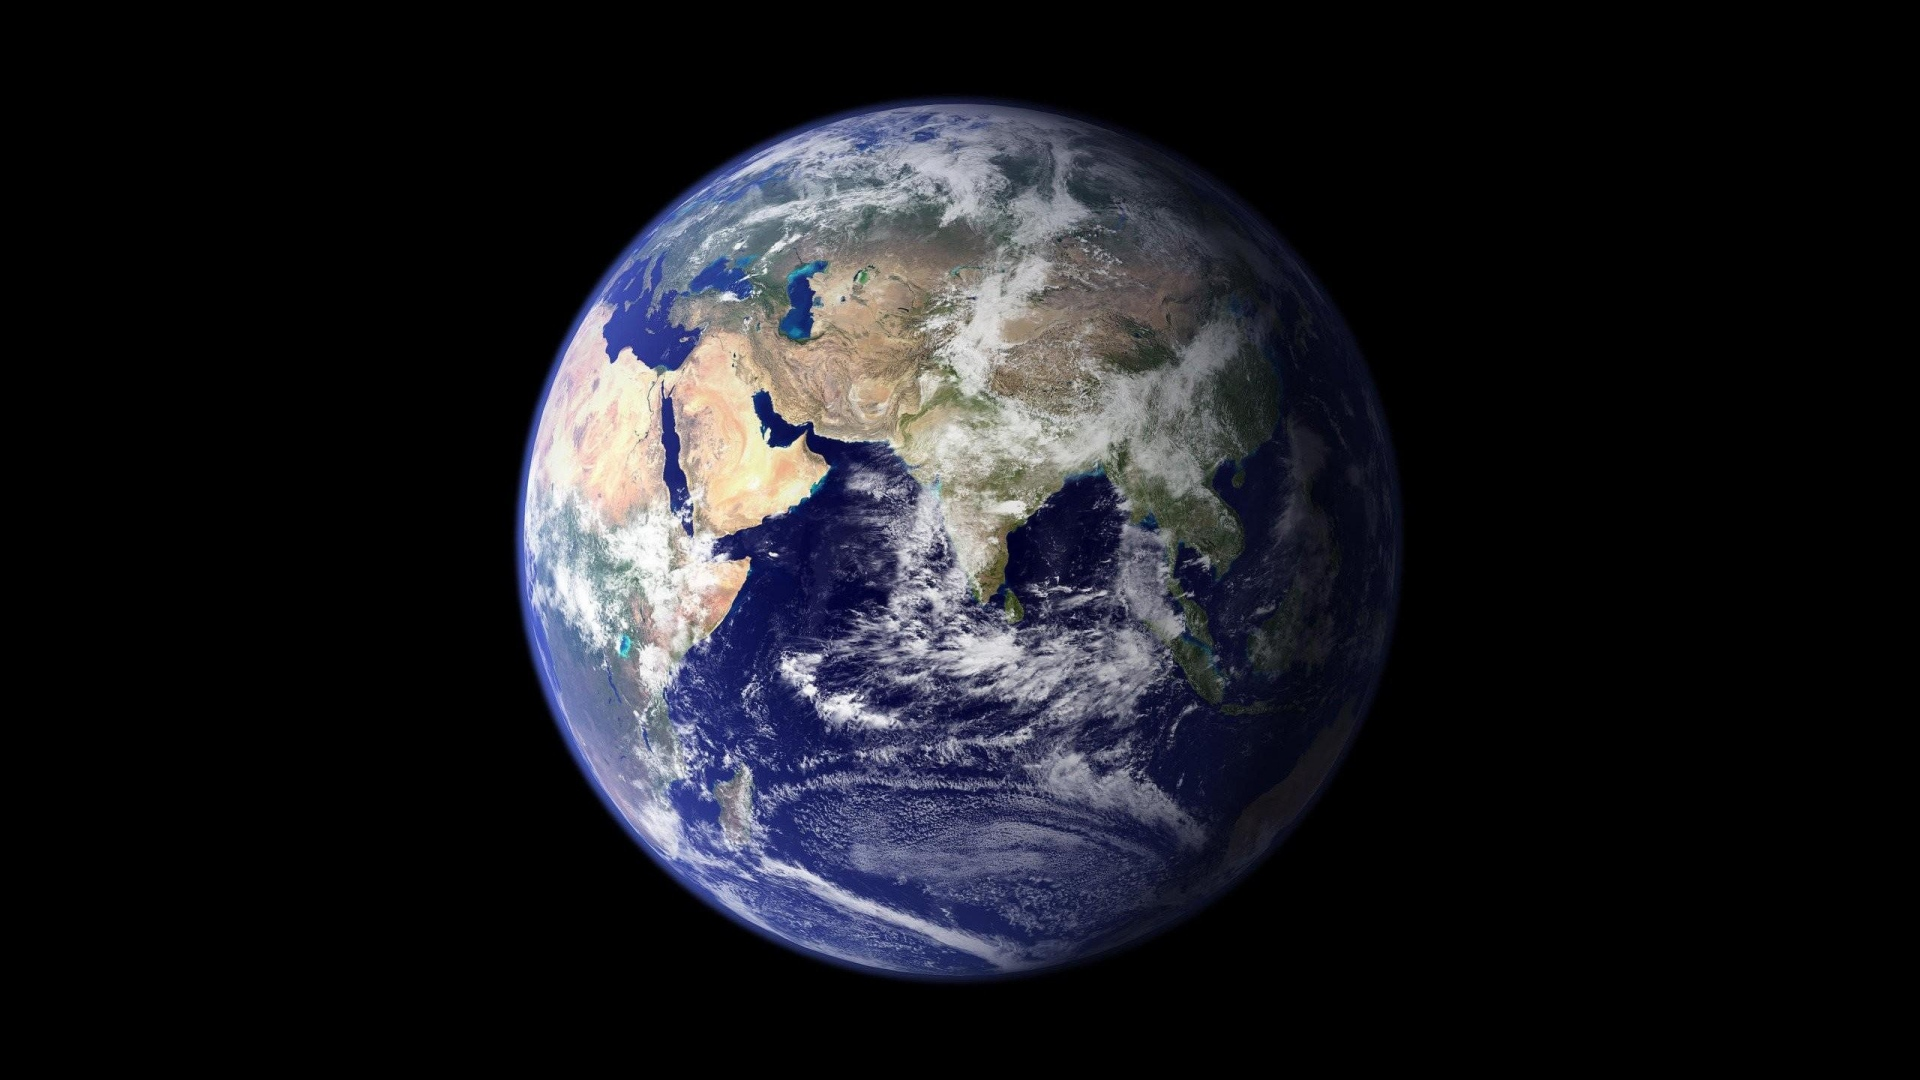 Download Wallpaper 1920x1080 Earth Planet Space Full Hd 1080p Hd